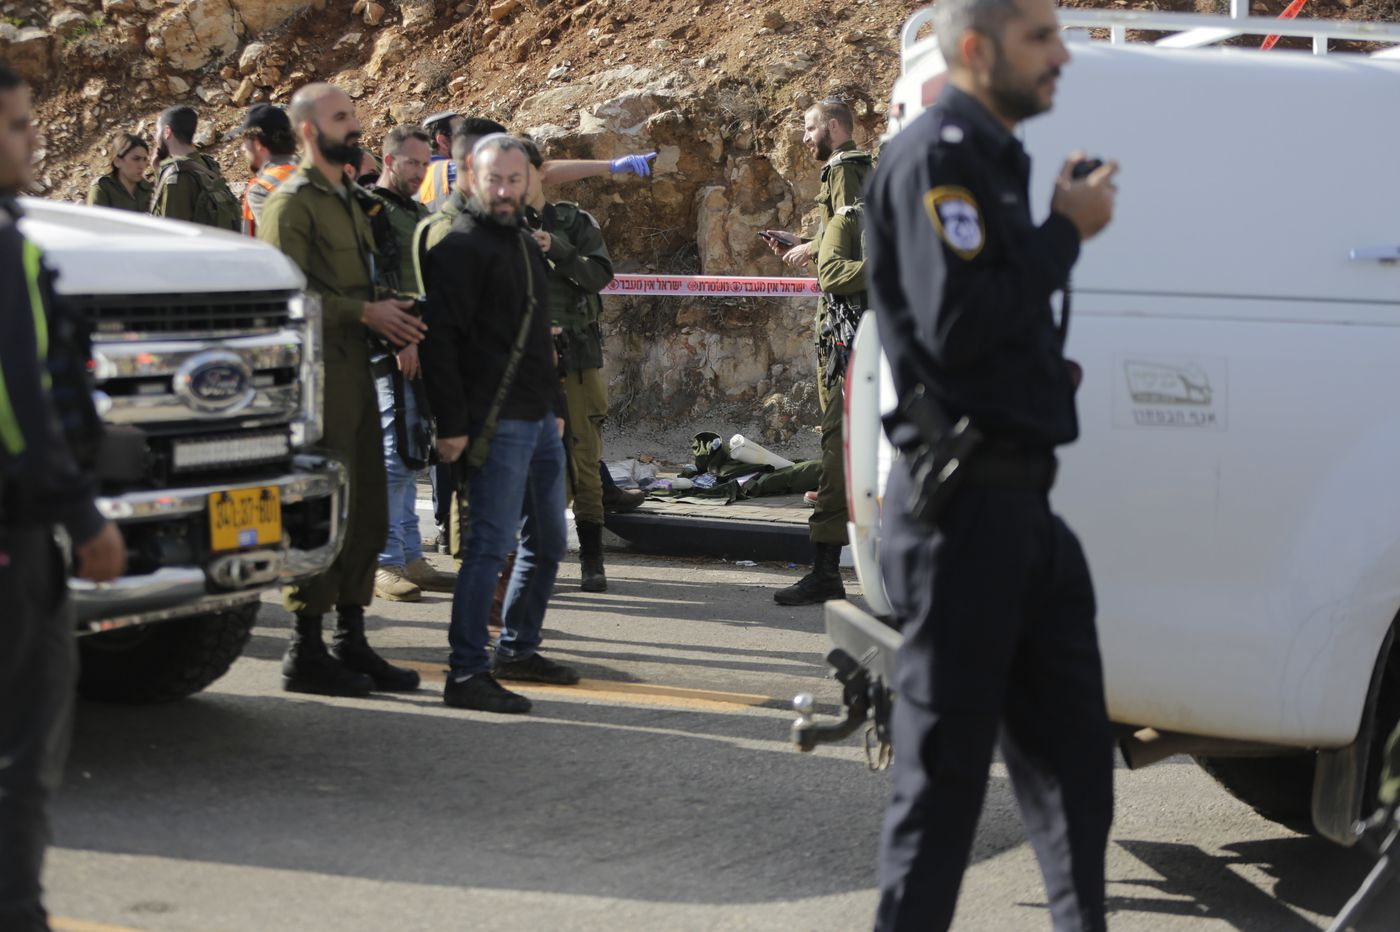 Israel launches West Bank crackdown after Palestinian attack